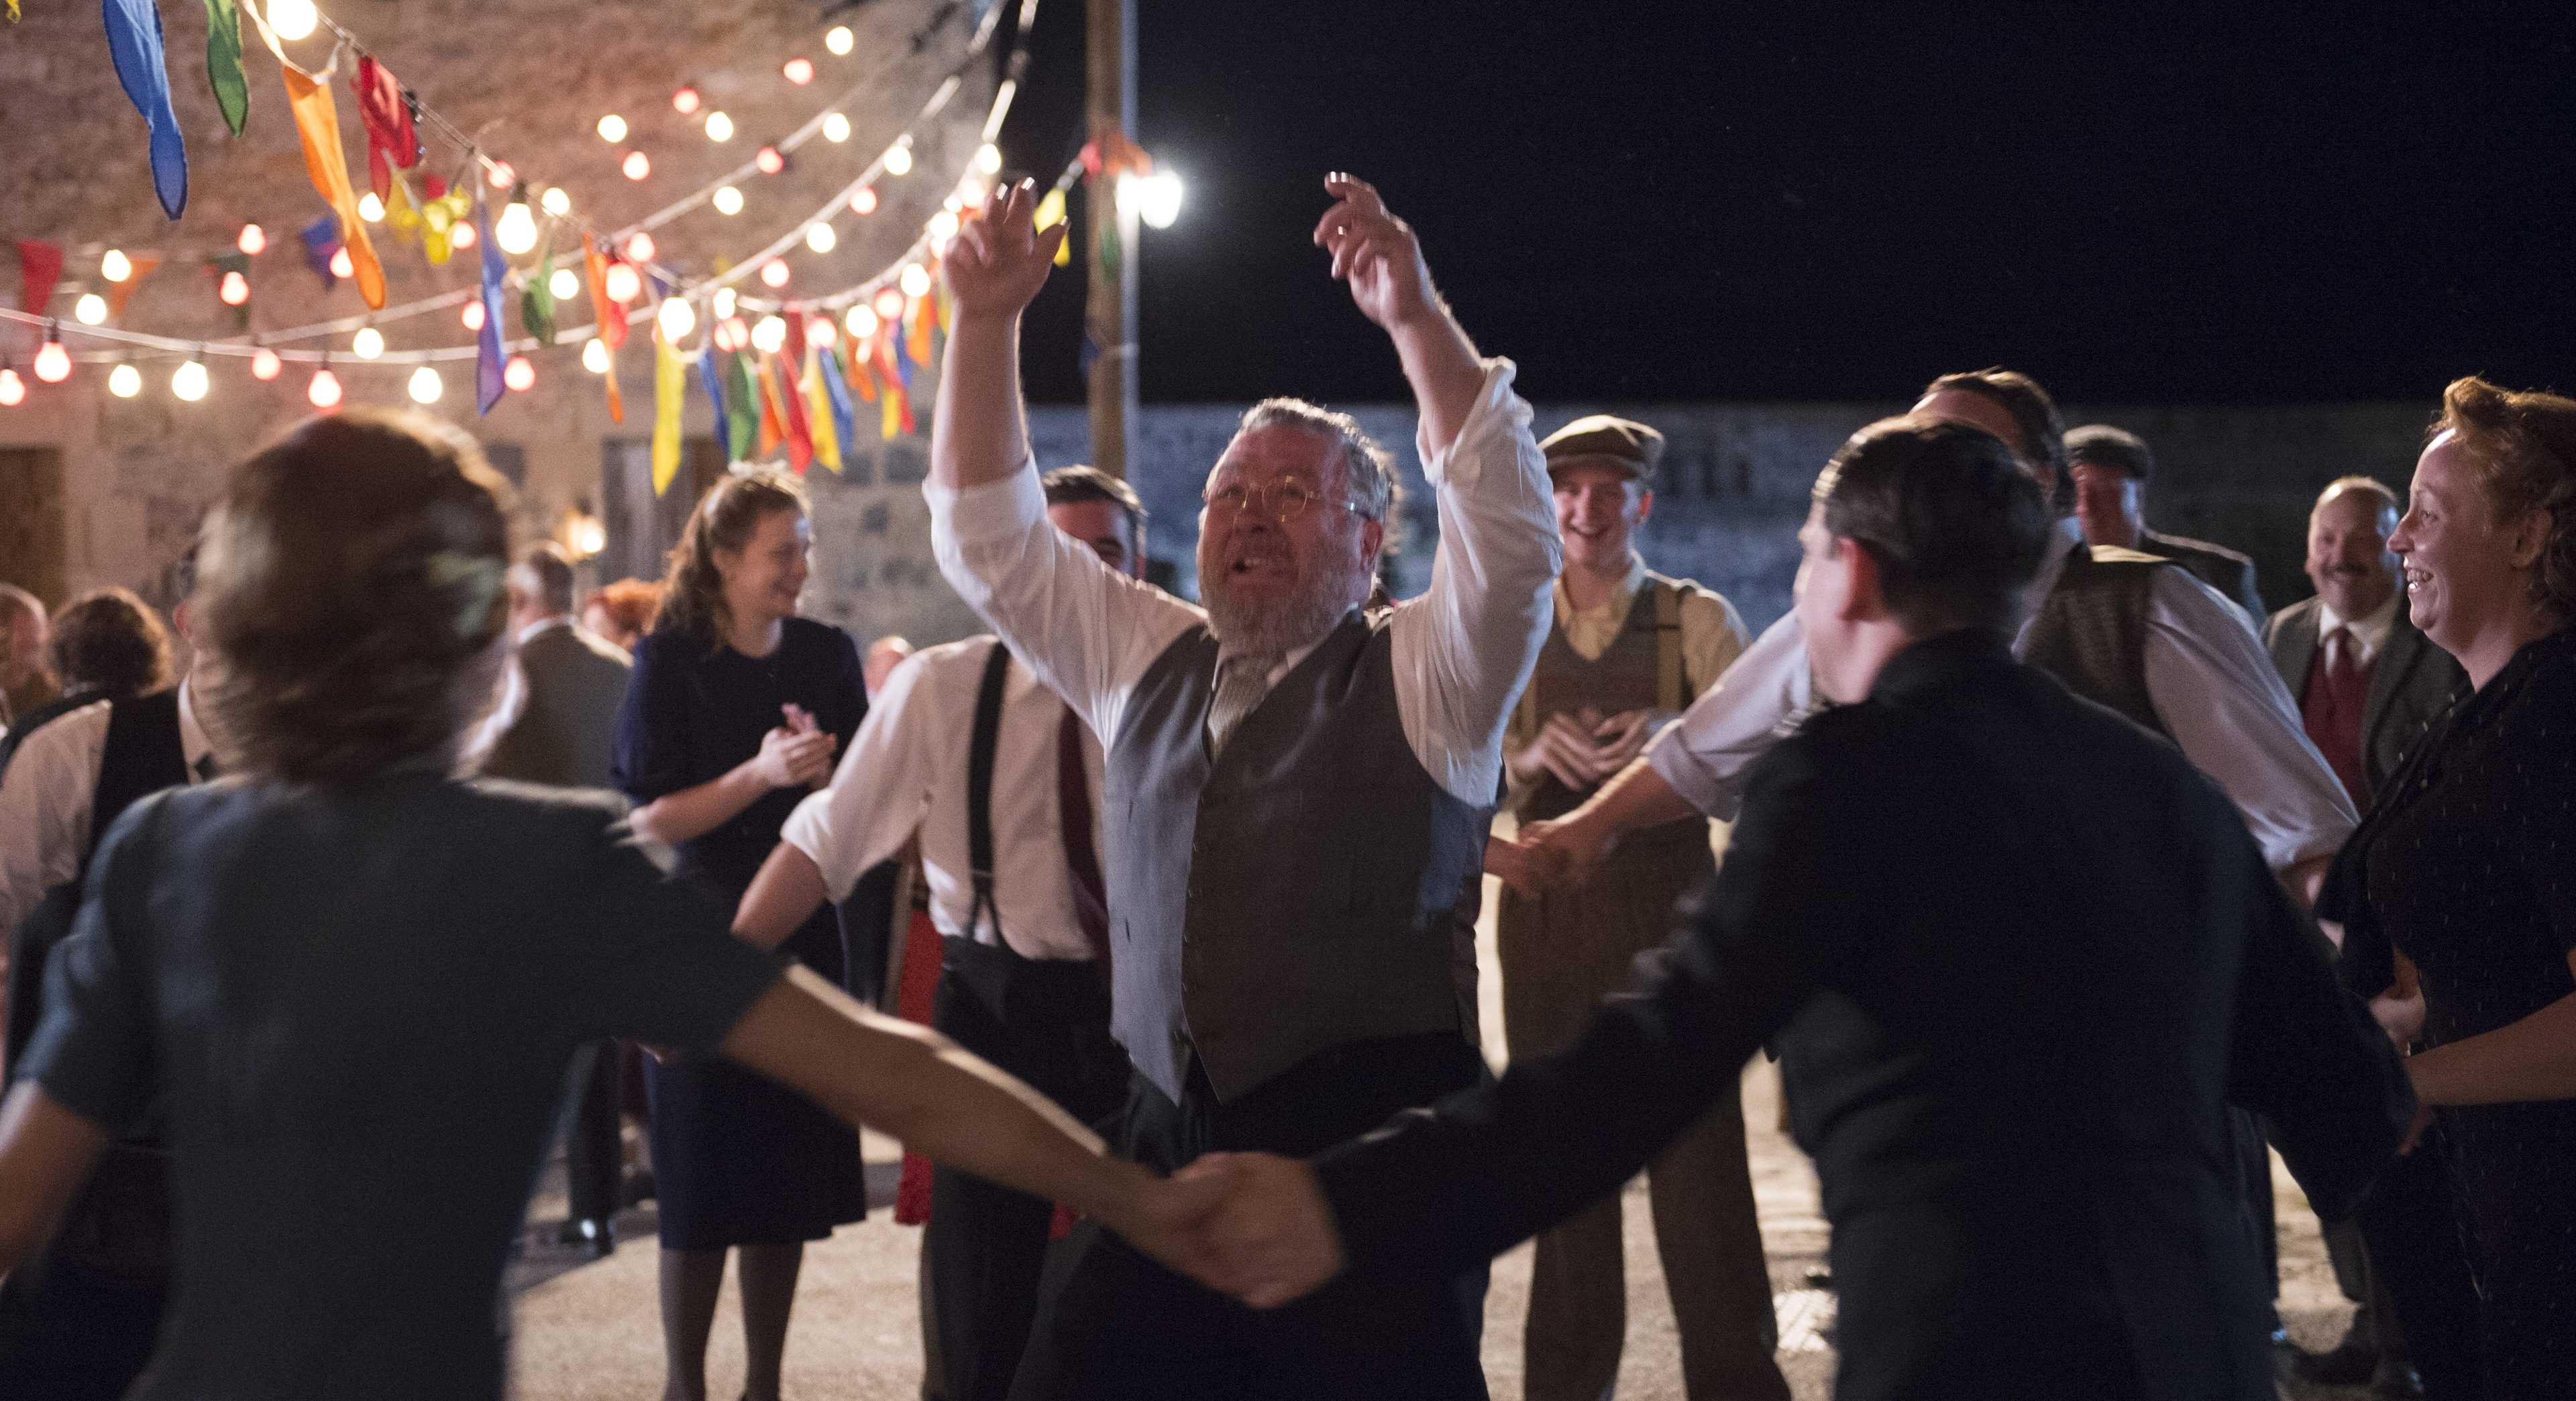 The wedding scene from Whisky Galore!